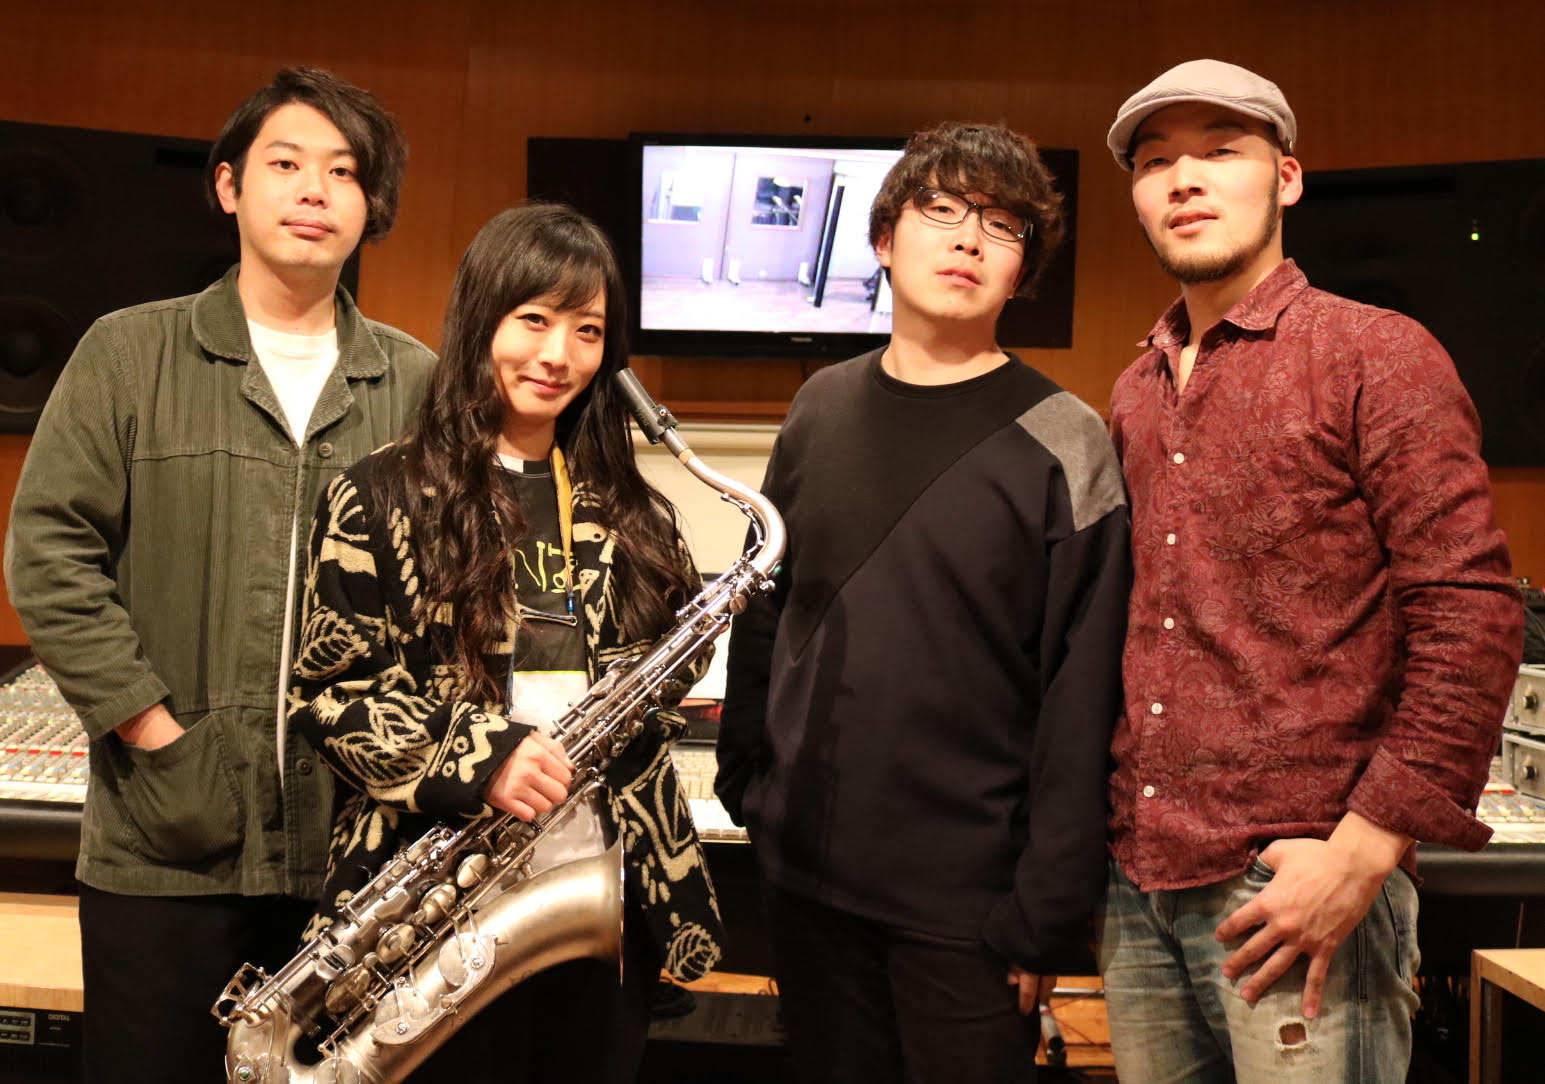 「Project M」 Live in Ladonna